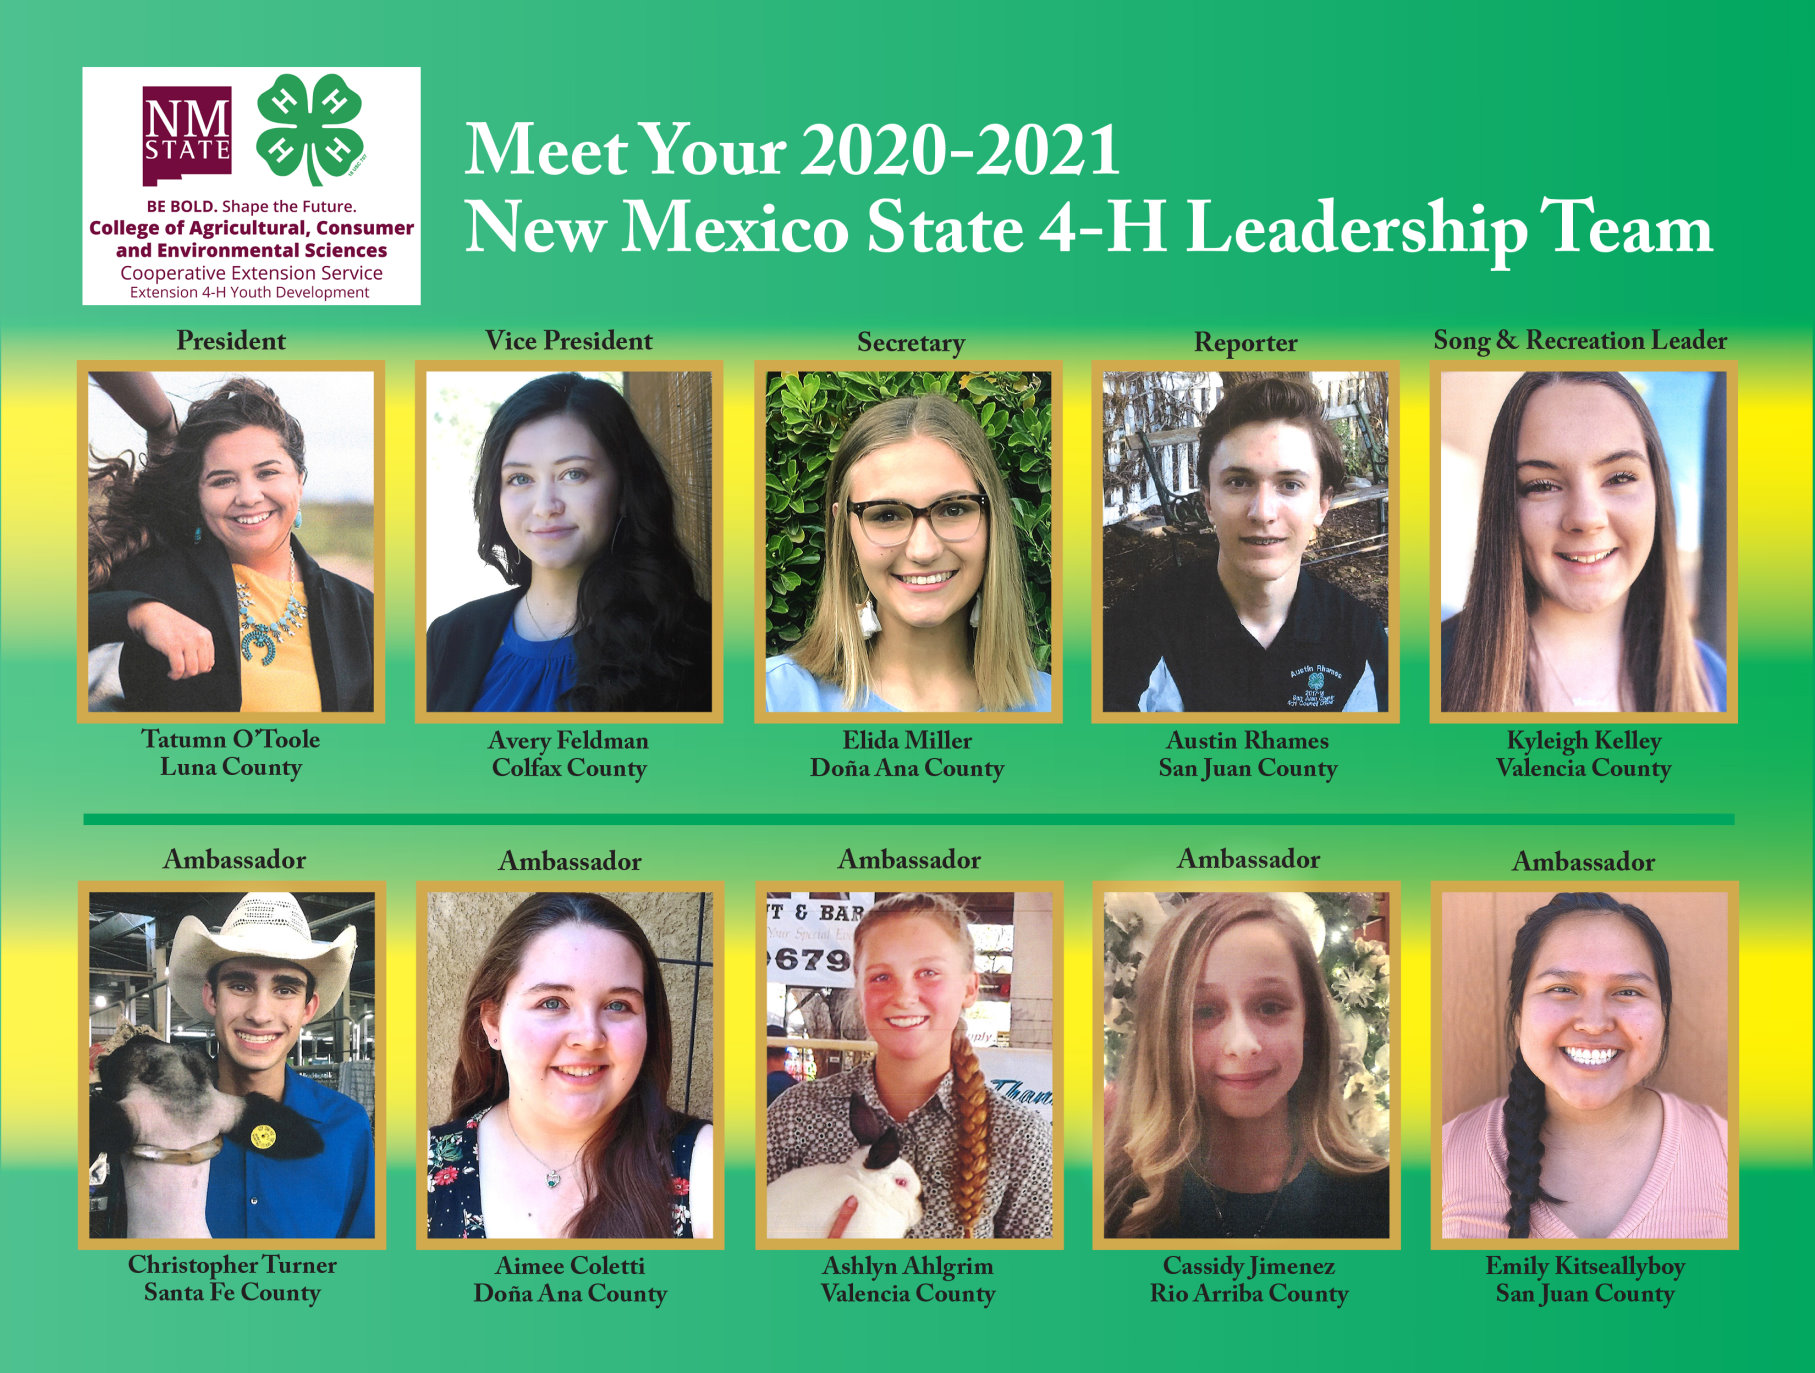 The 2020-21 4-H Leadership Team are, top row, Tatumn O'Toole of Luna County, president; Avery Feldman of Colfax County, vice president; Elida Miller of Dona Ana County, secretary; Austin Rhames of San Juan County, reporter; Kyleigh Kelly of Valencia County, song and recreation leader; and, bottom row, ambassadors Christopher Turner of Santa Fe County, Aimee Coletti of Dona Ana County, Ashlyn Ahlgrim of Valencia County, Cassidy Jimenez of Rio Arriba County and Emily Kitseallyboy of San Juan County.